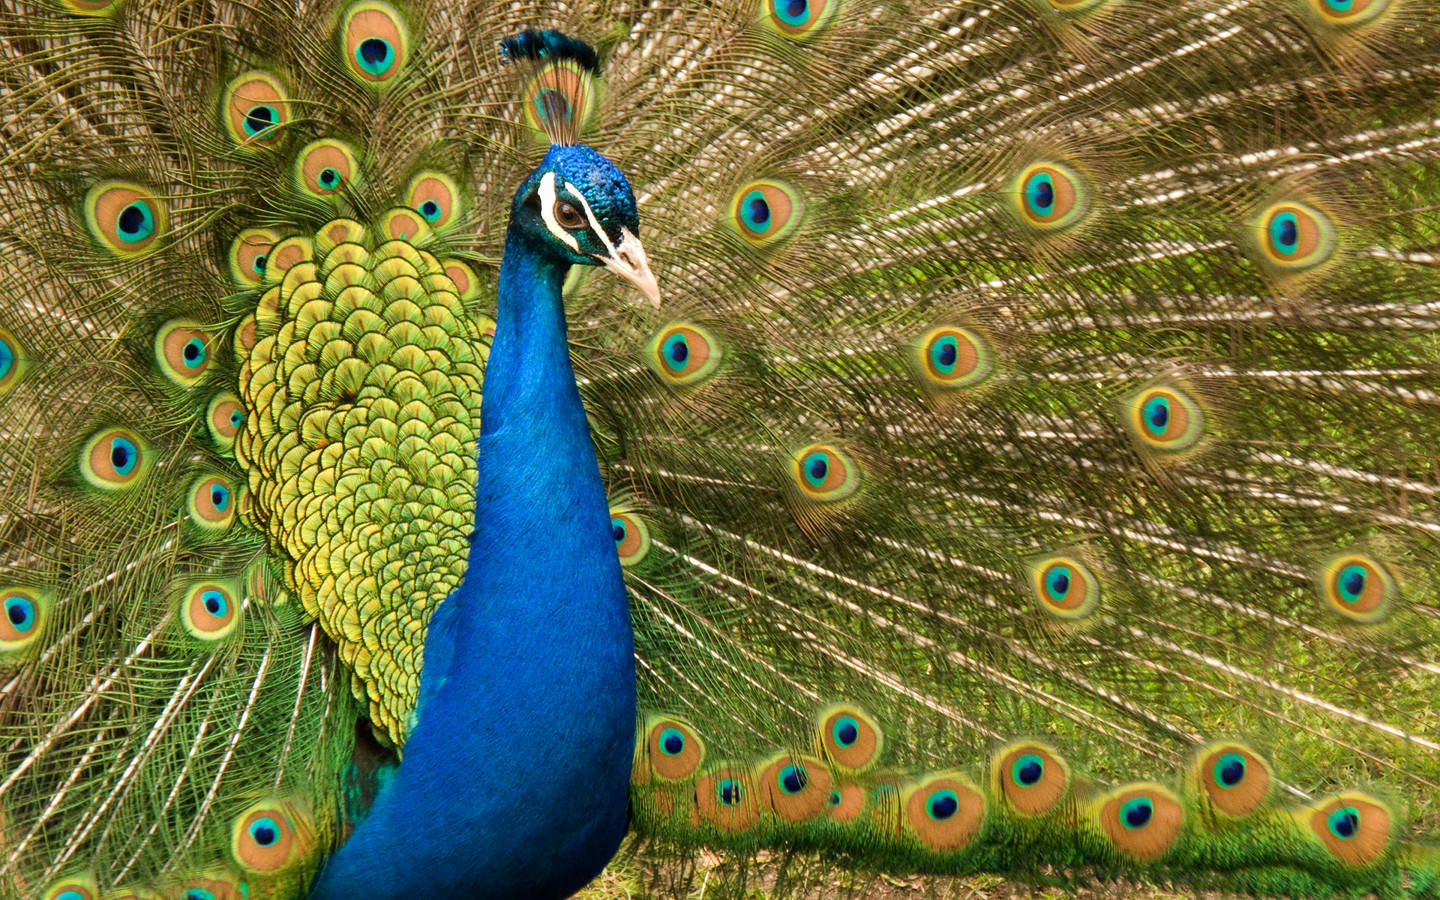 Wallpaper download free image search hd - Ltest Hd Wallpaper Peacock Peacock Hd Wallpapers Peacock Hd Pics Download Pecock Pictures